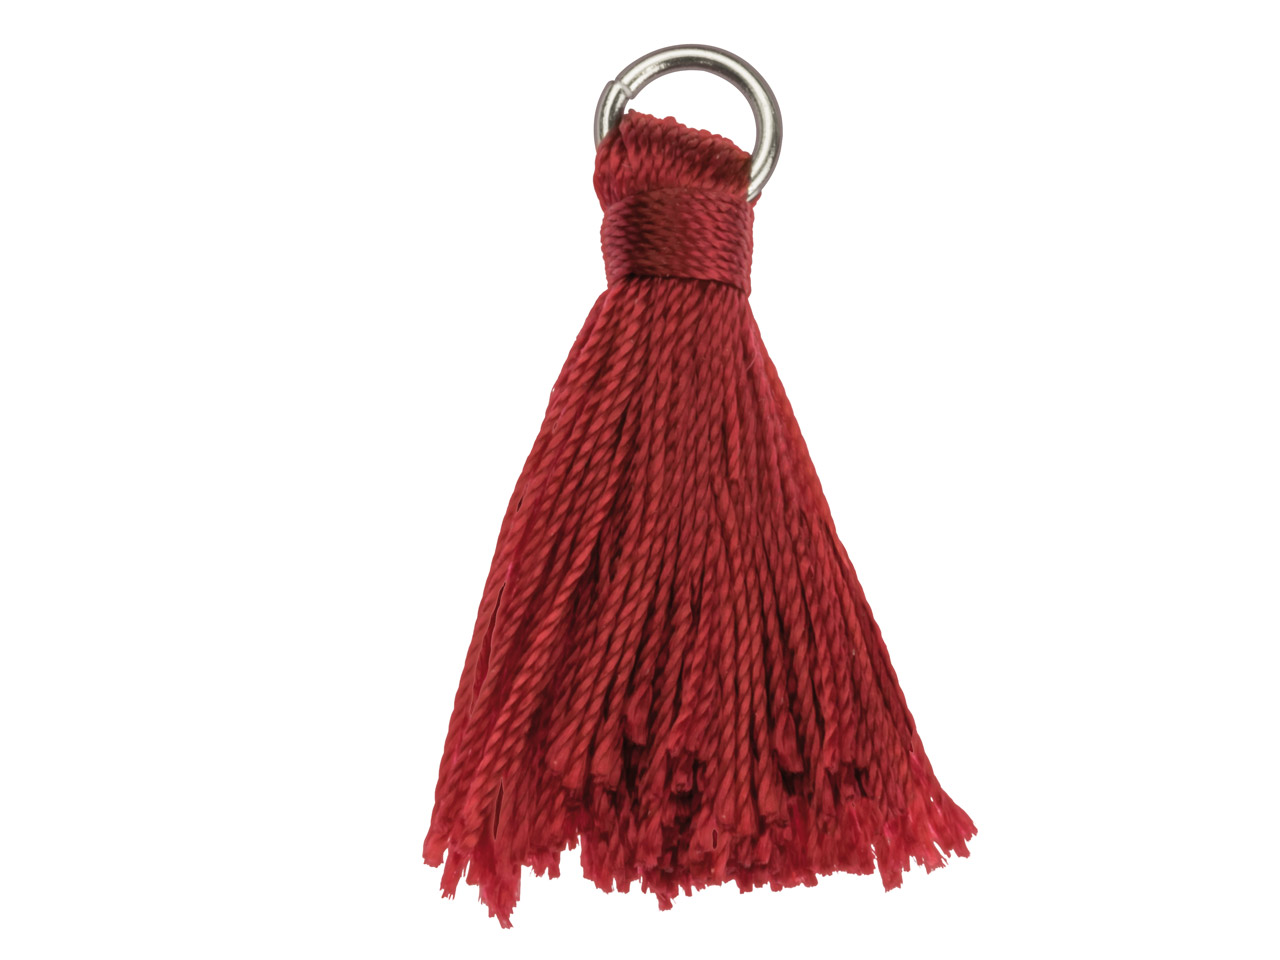 Red Nylon Tassel With Silver Plated Jump Ring Pack of 5